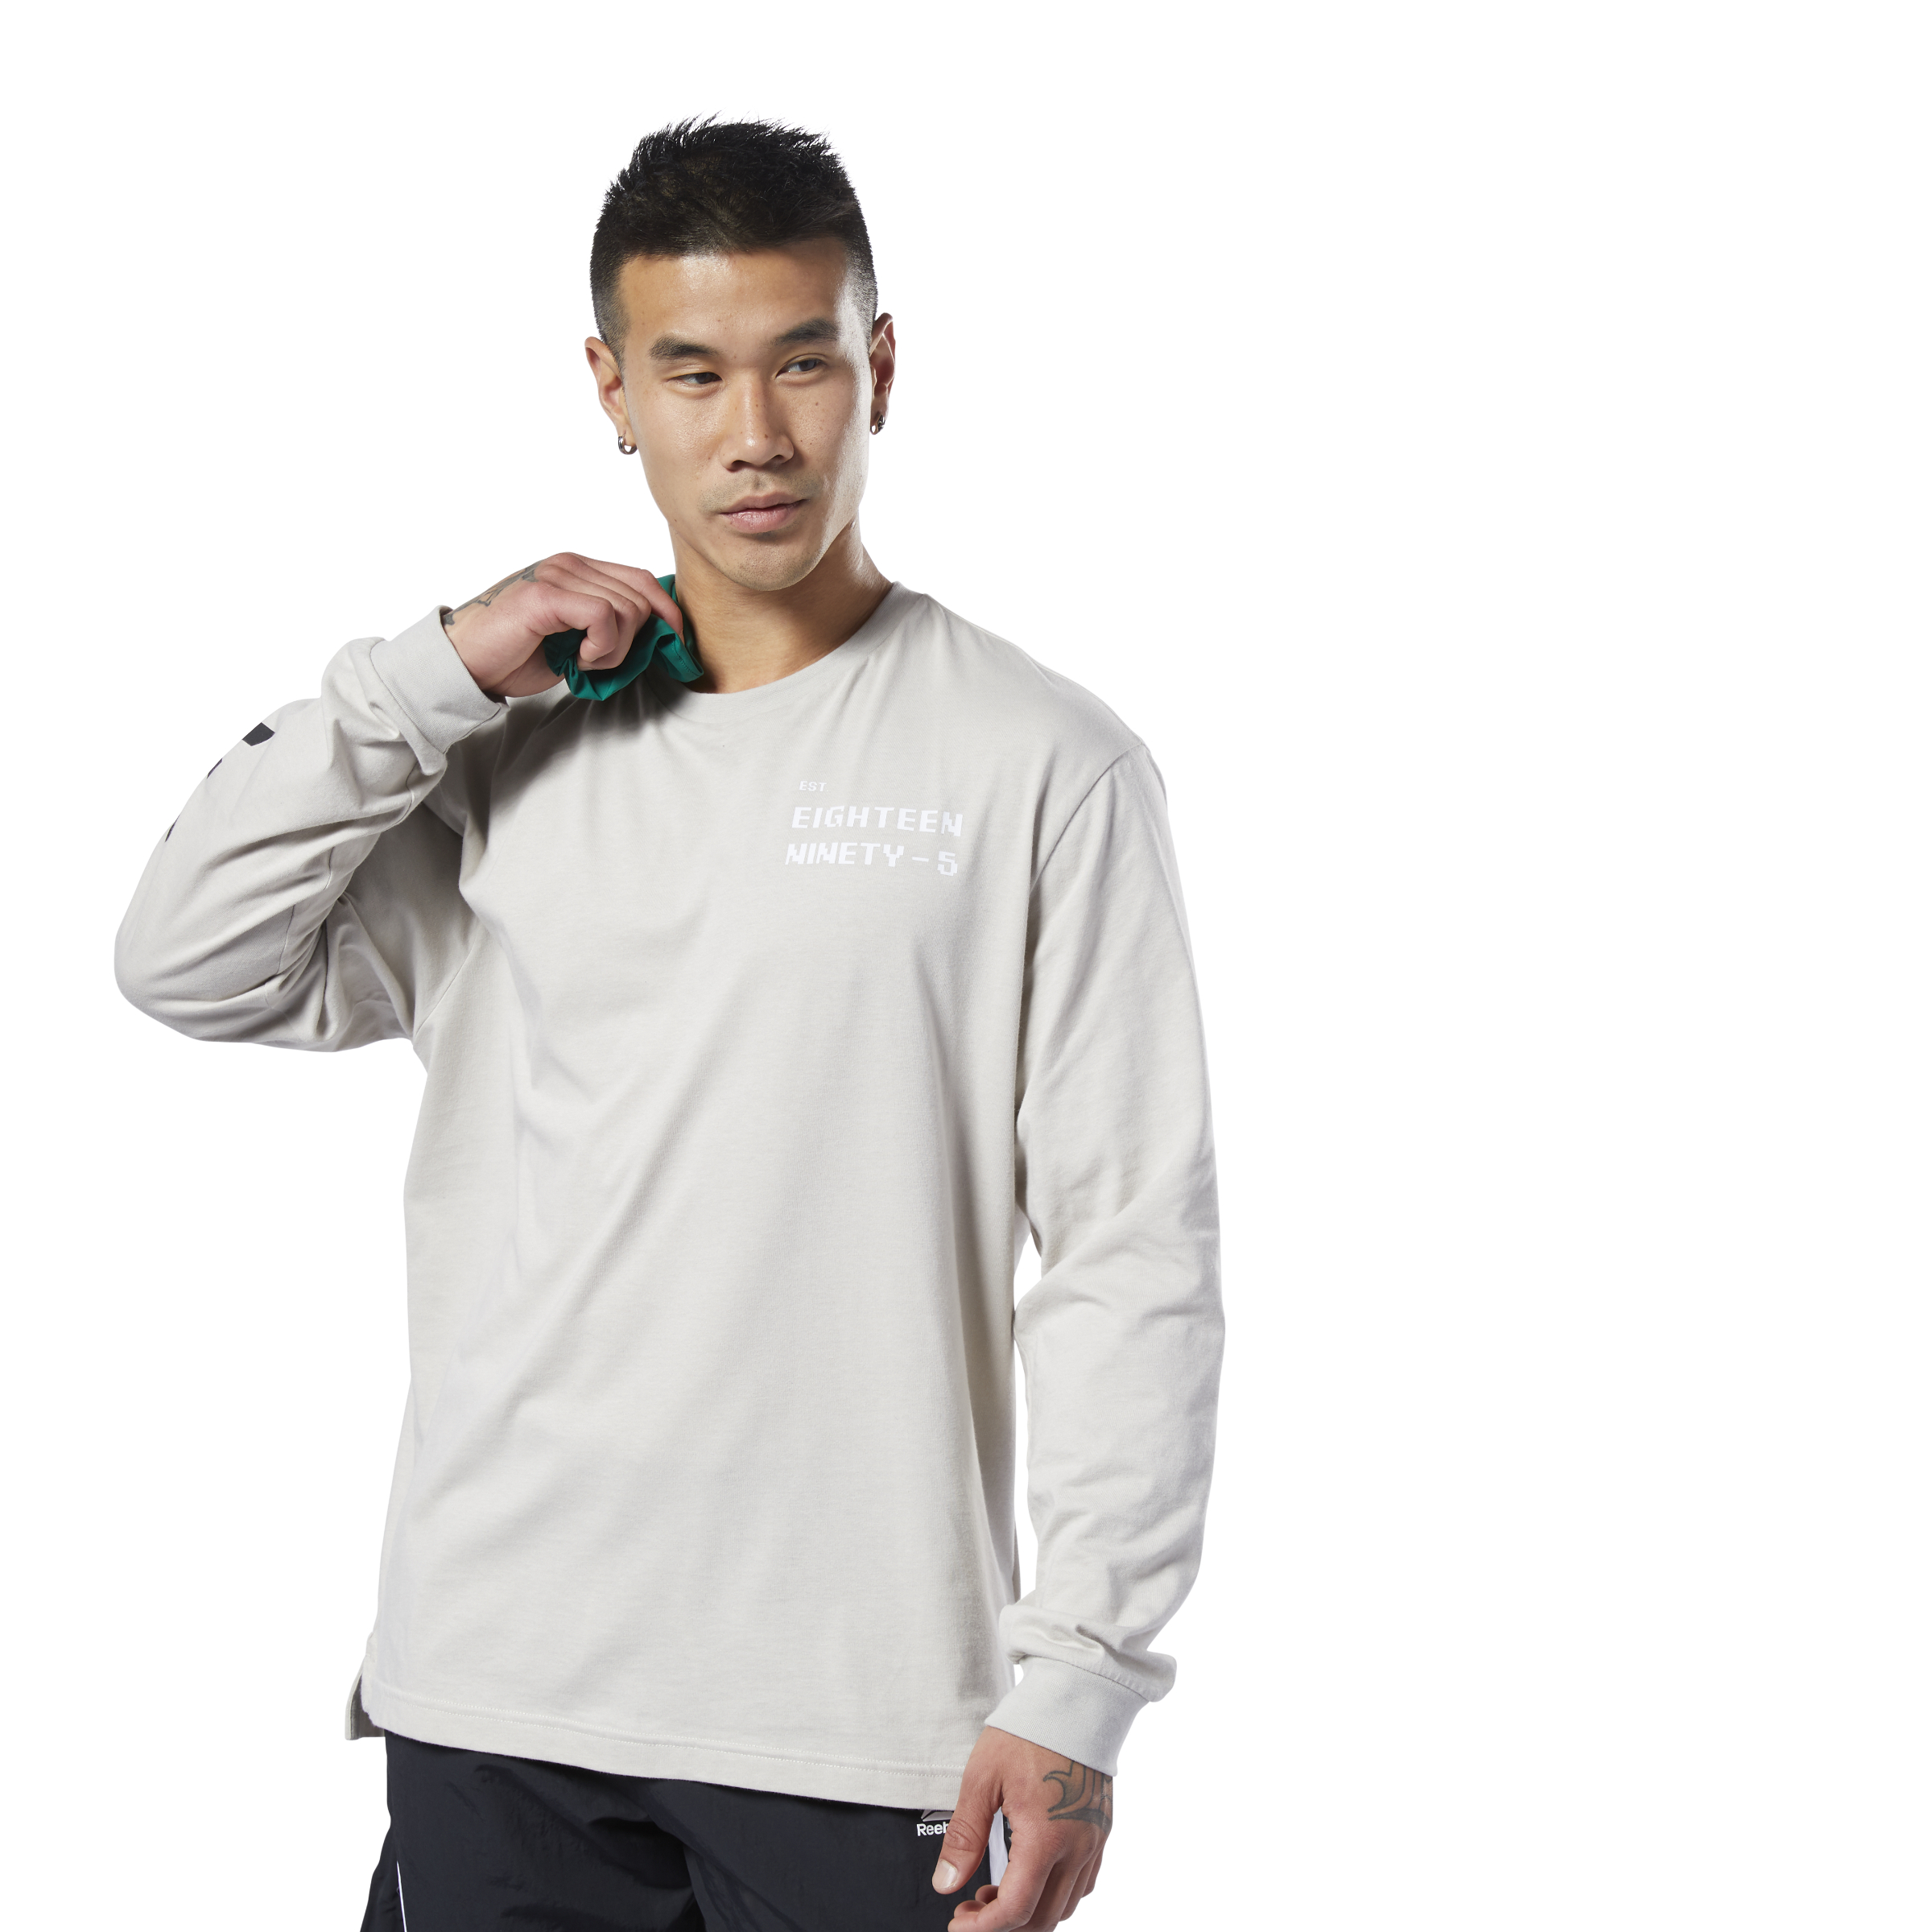 Reebok-Men-039-s-Meet-You-There-Tee thumbnail 10